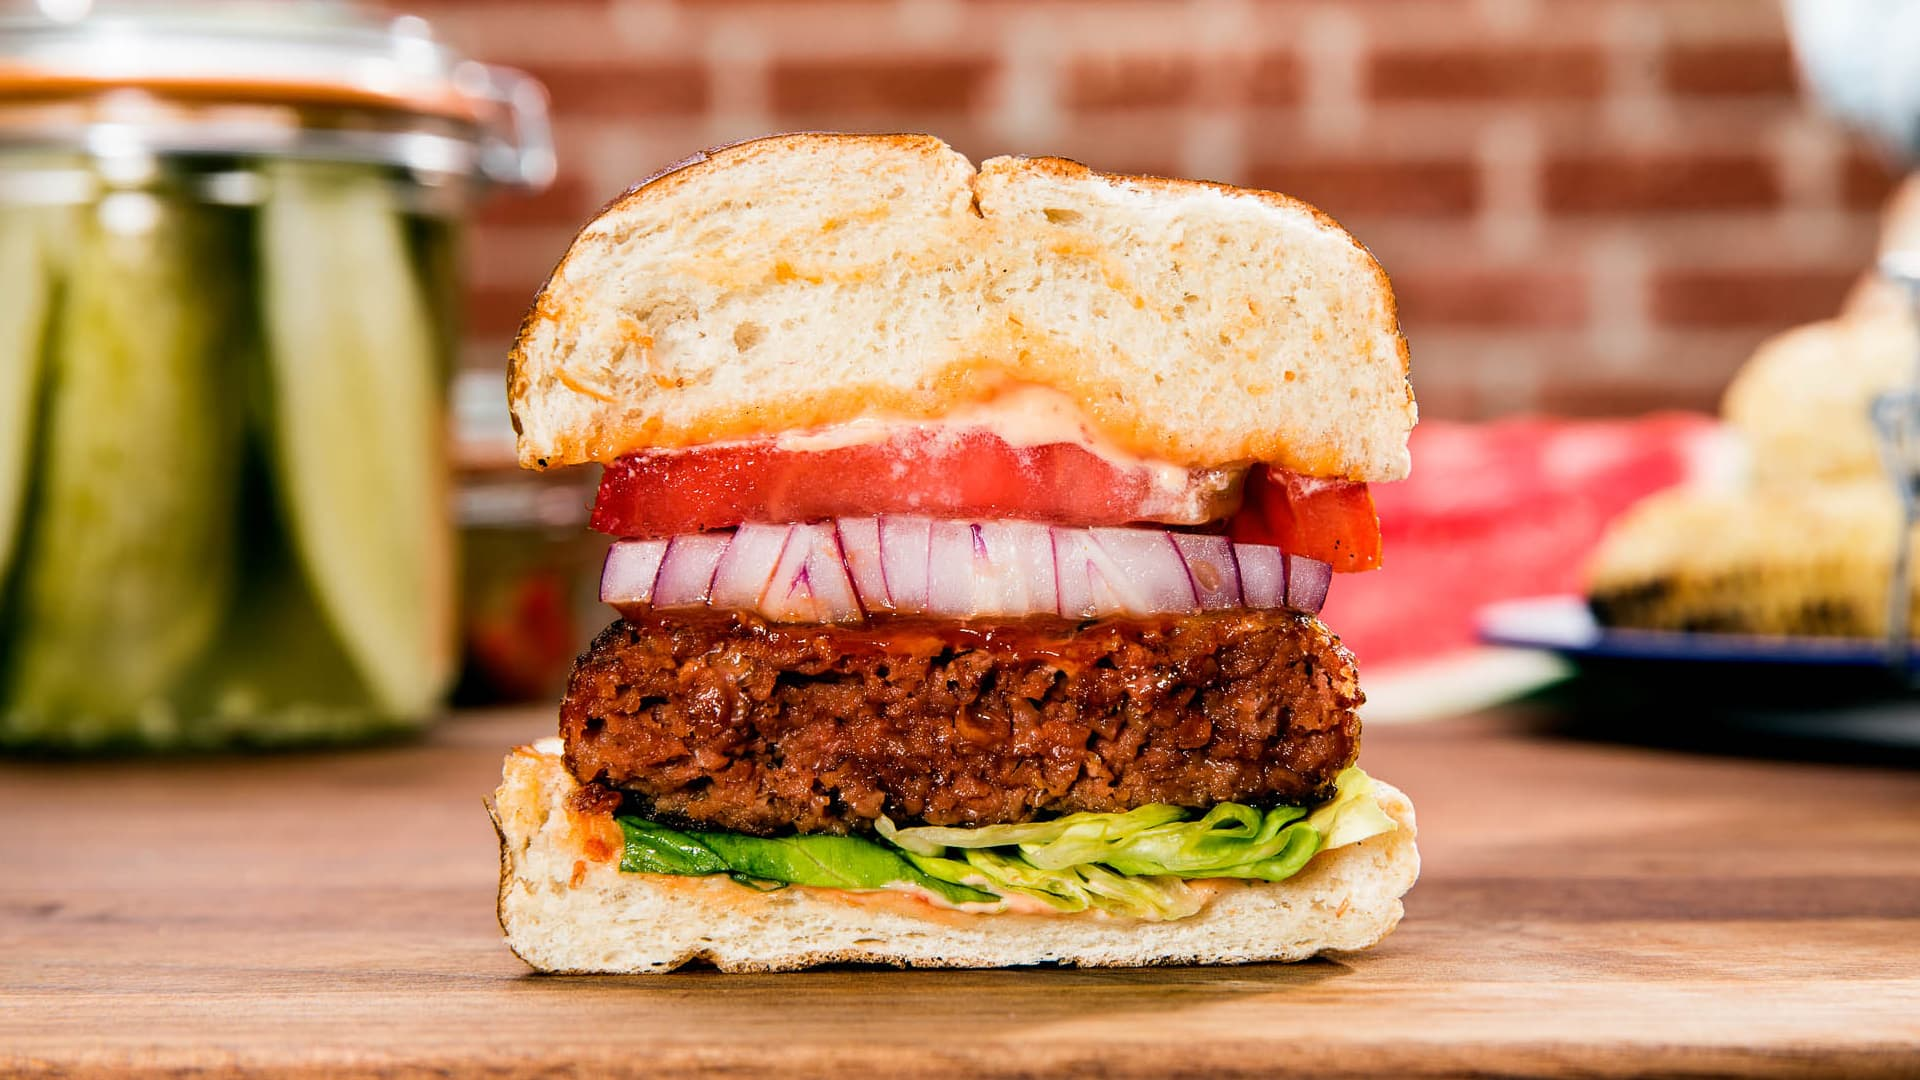 Blue Apron surges as much as 53% after adding Beyond Meat to meal kits in a bid to revive orders